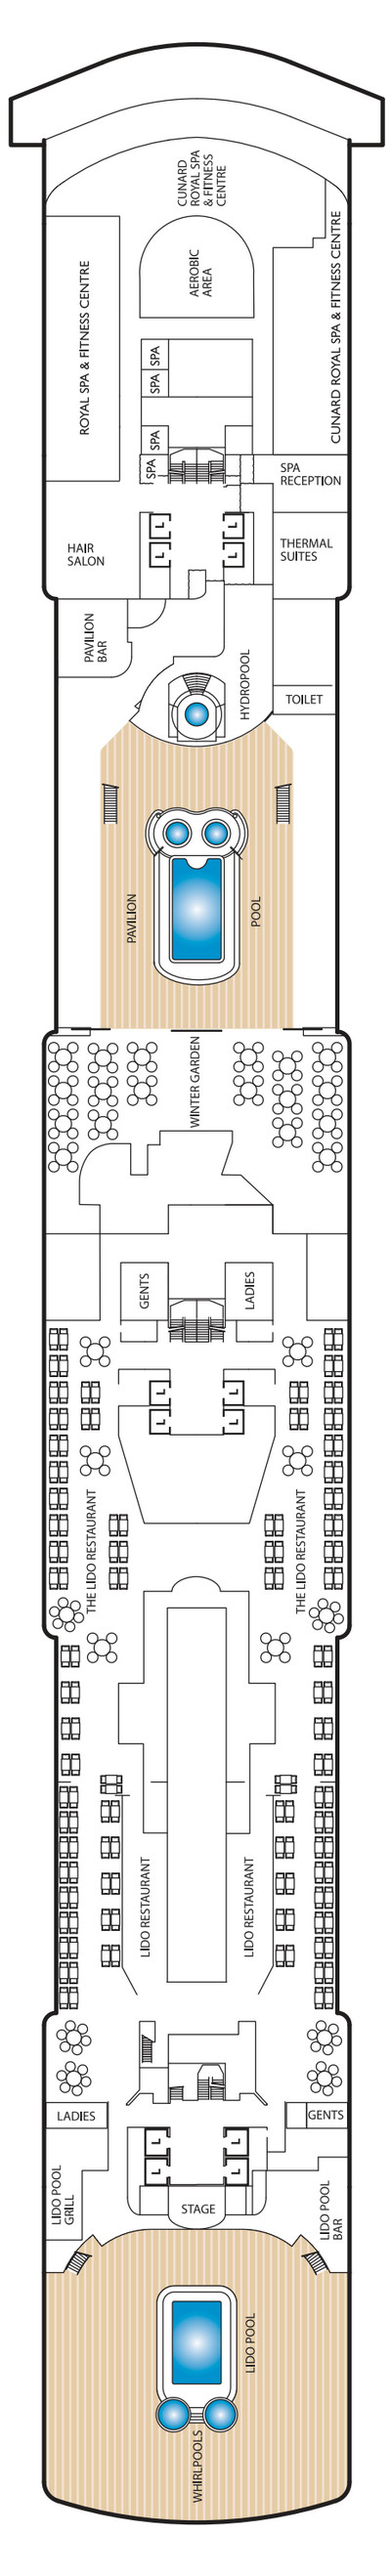 Queen Victoria Deck 9 layout